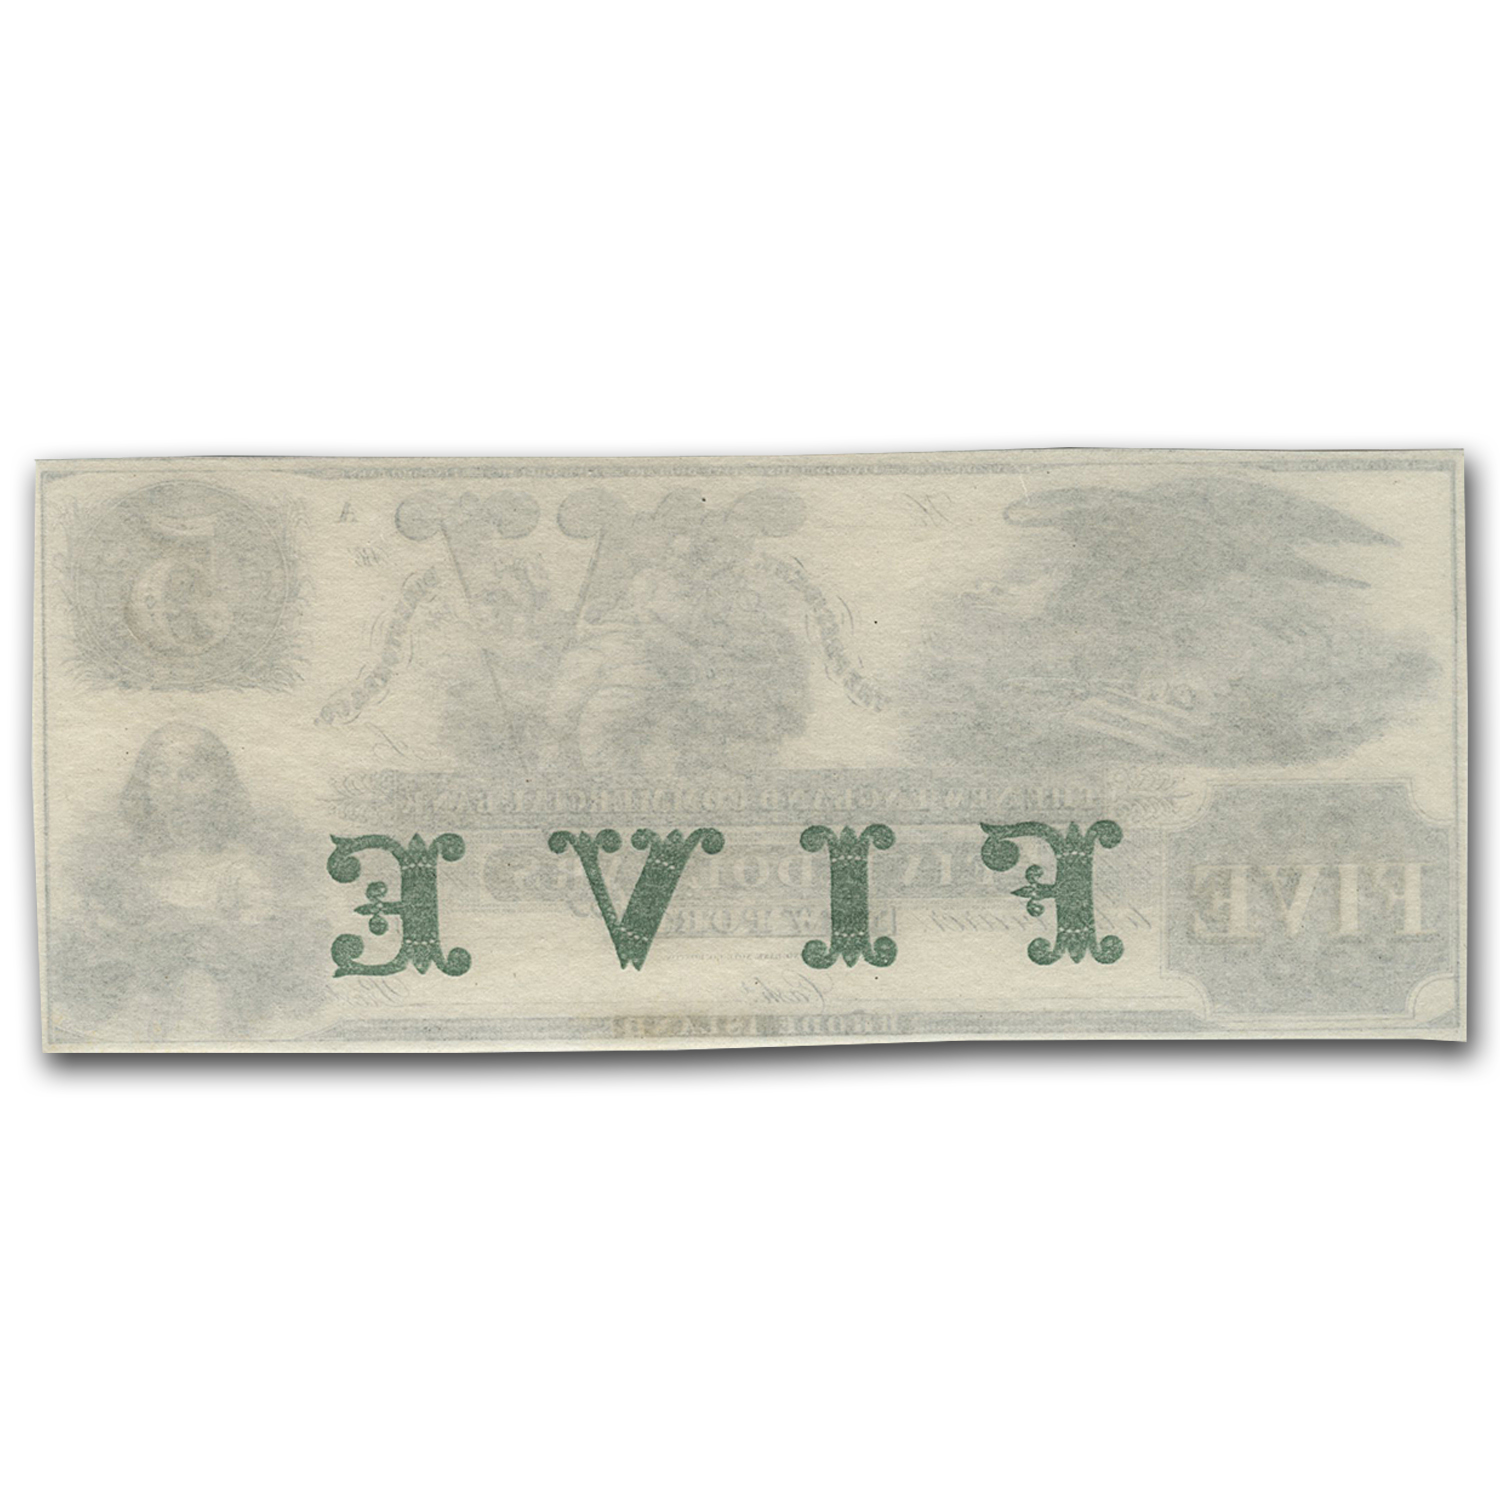 18__ New England Commercial Bank Newport, RI $5 RI-155 CU (G76b)